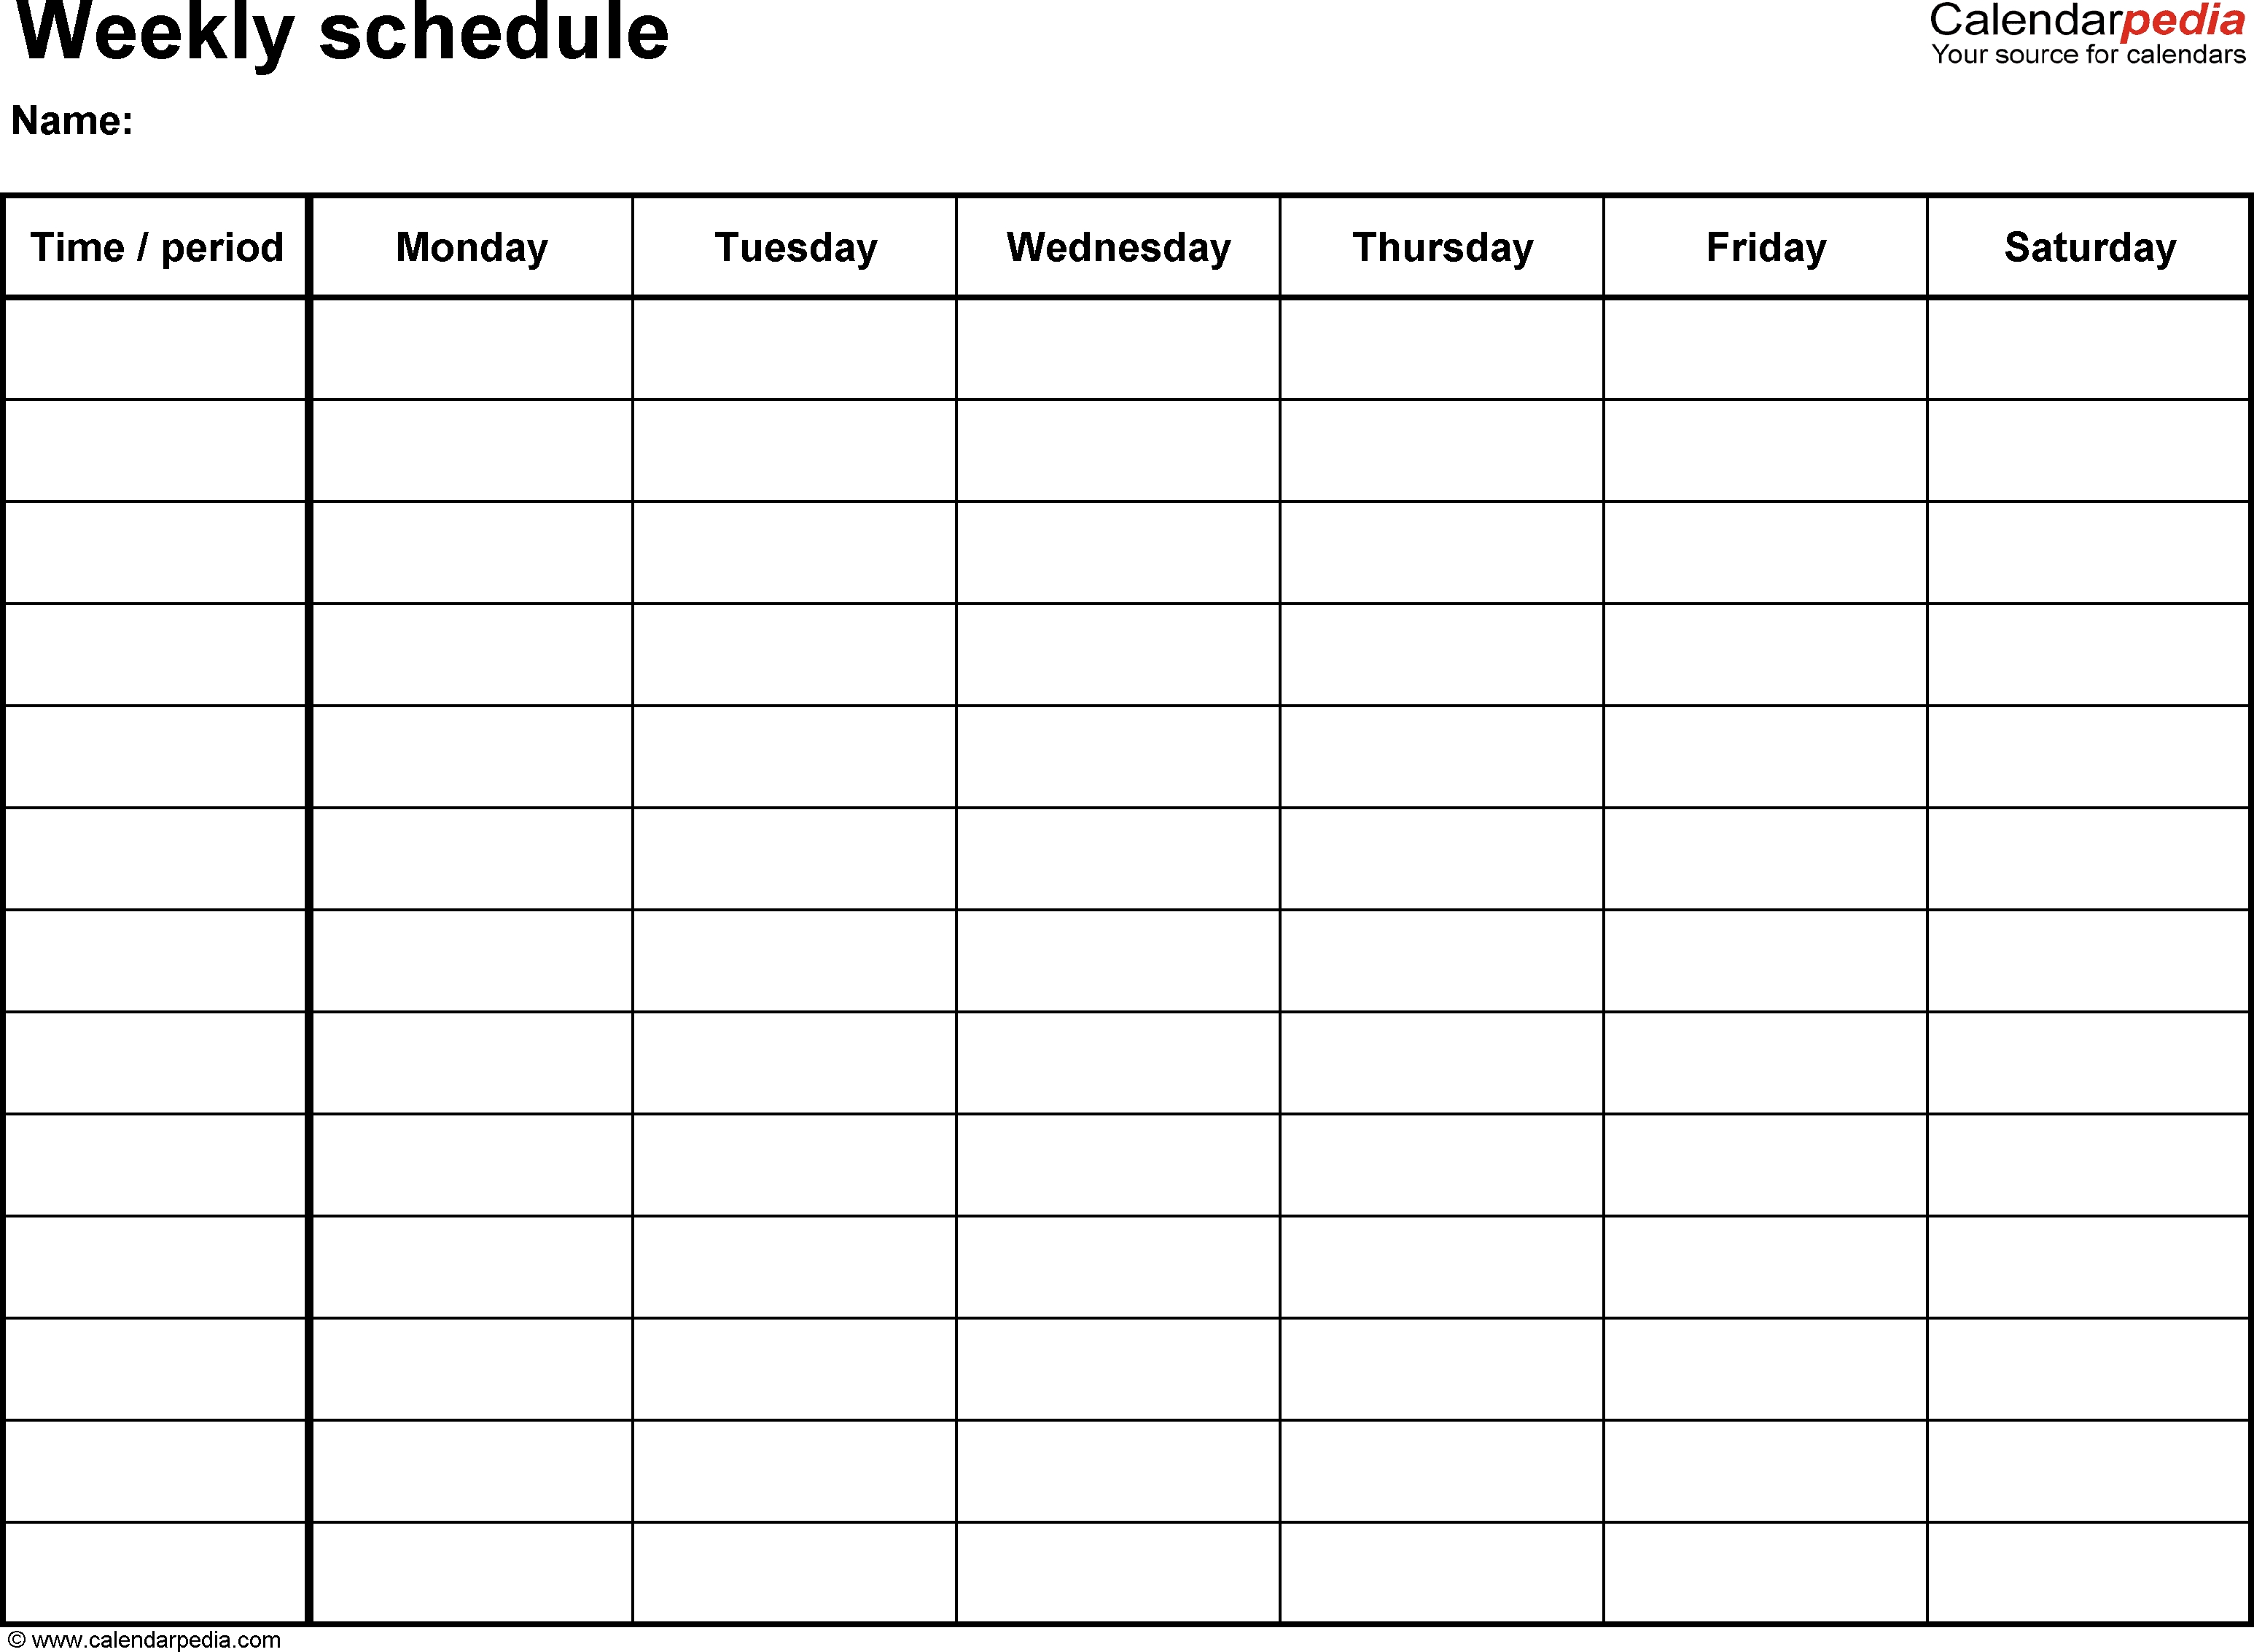 Free Weekly Schedule Templates For Word - 18 Templates intended for 6 Week Calendar Template Printable